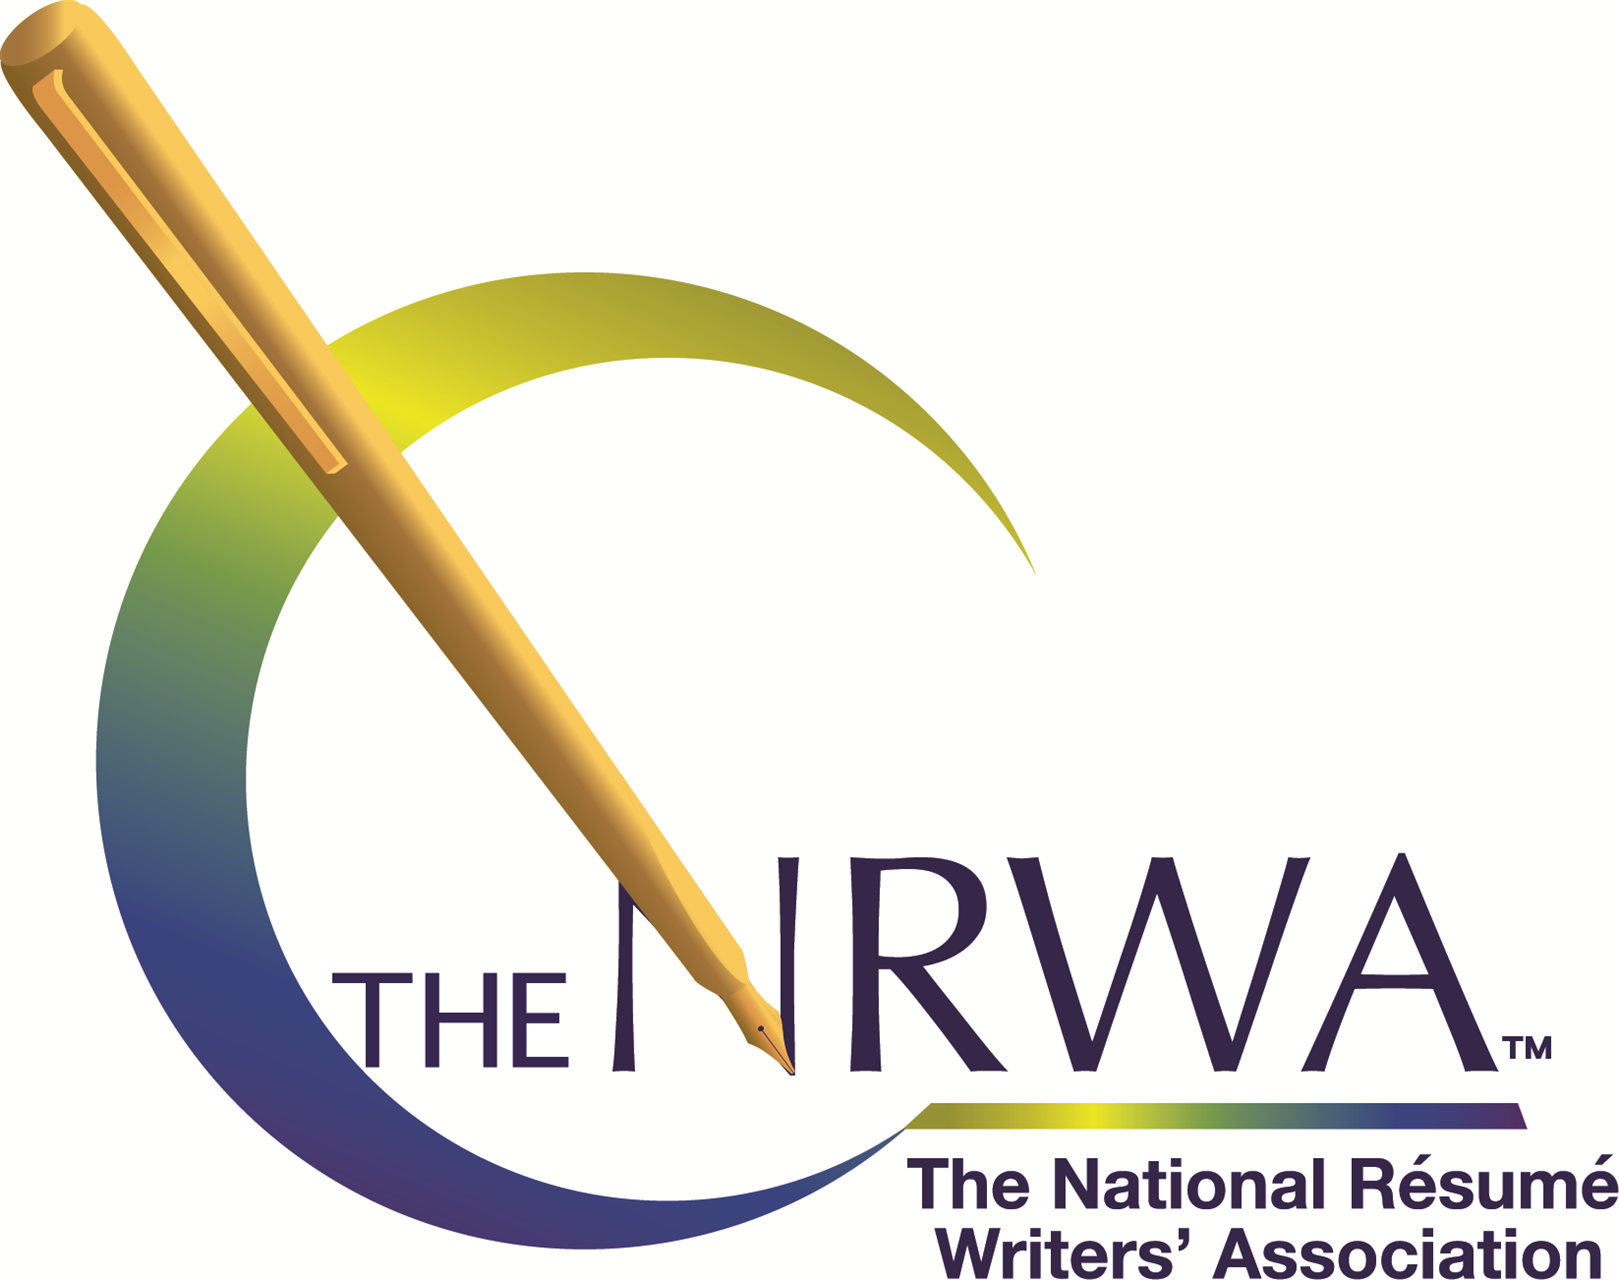 The NRWA - The National Resume Writers' Association TM